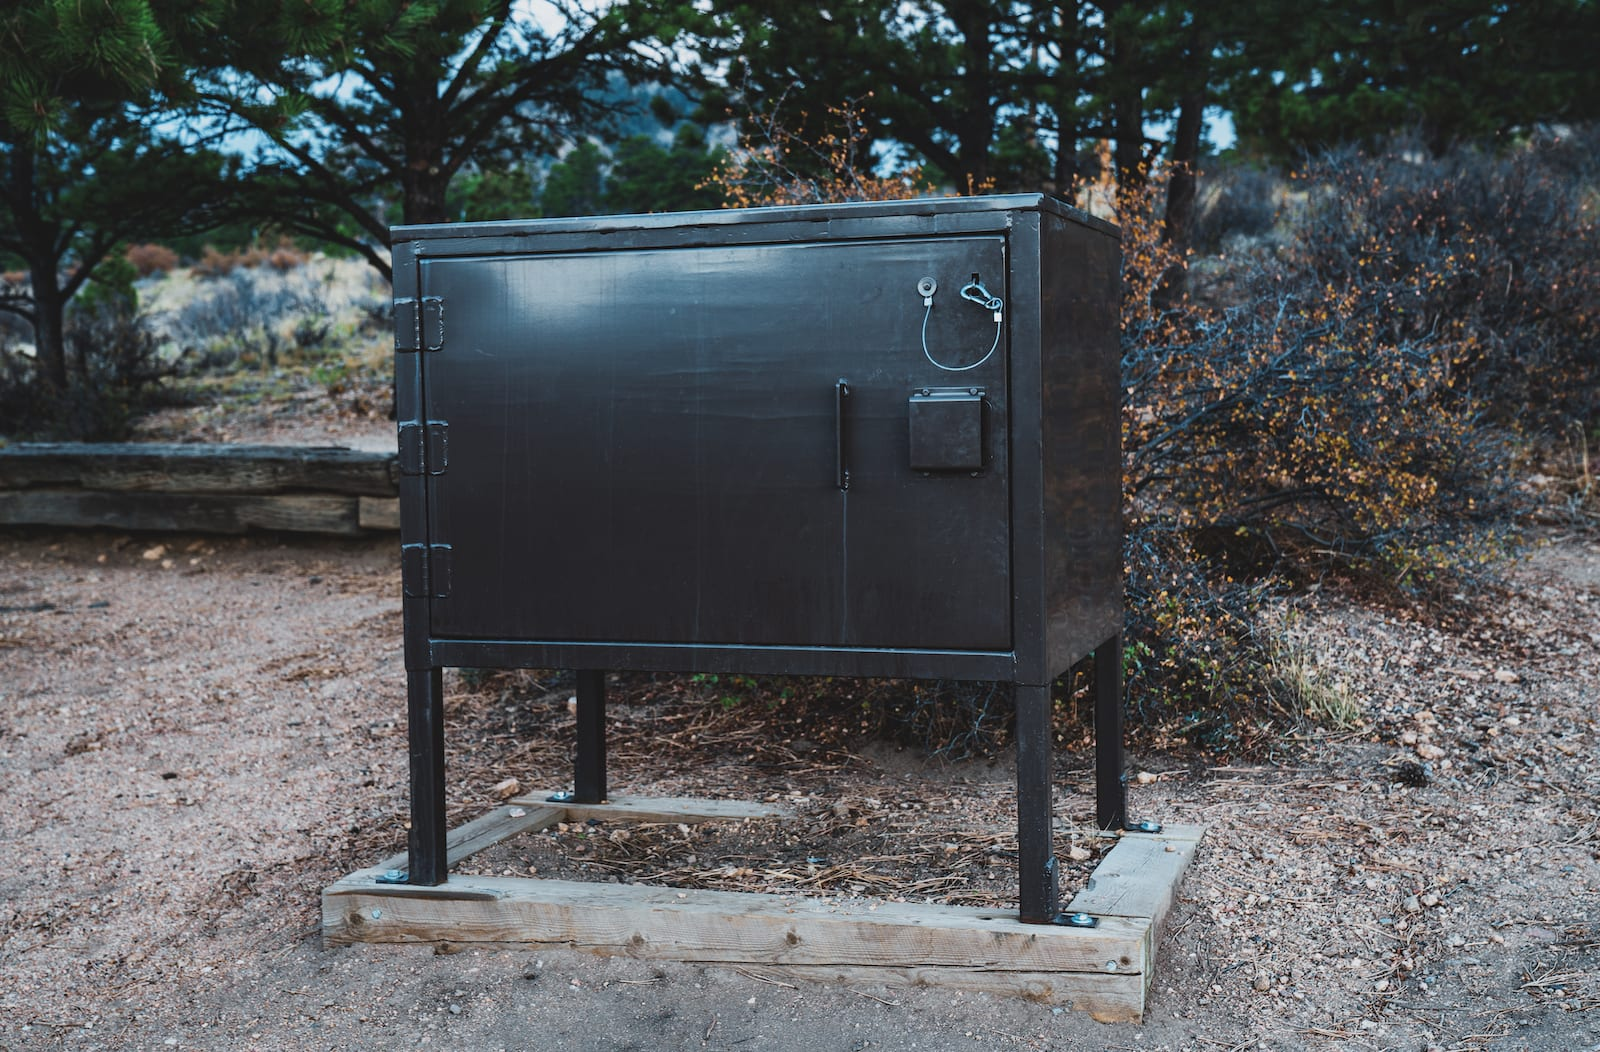 Estes Park Campground at Mary's Lake Bear Storage Box